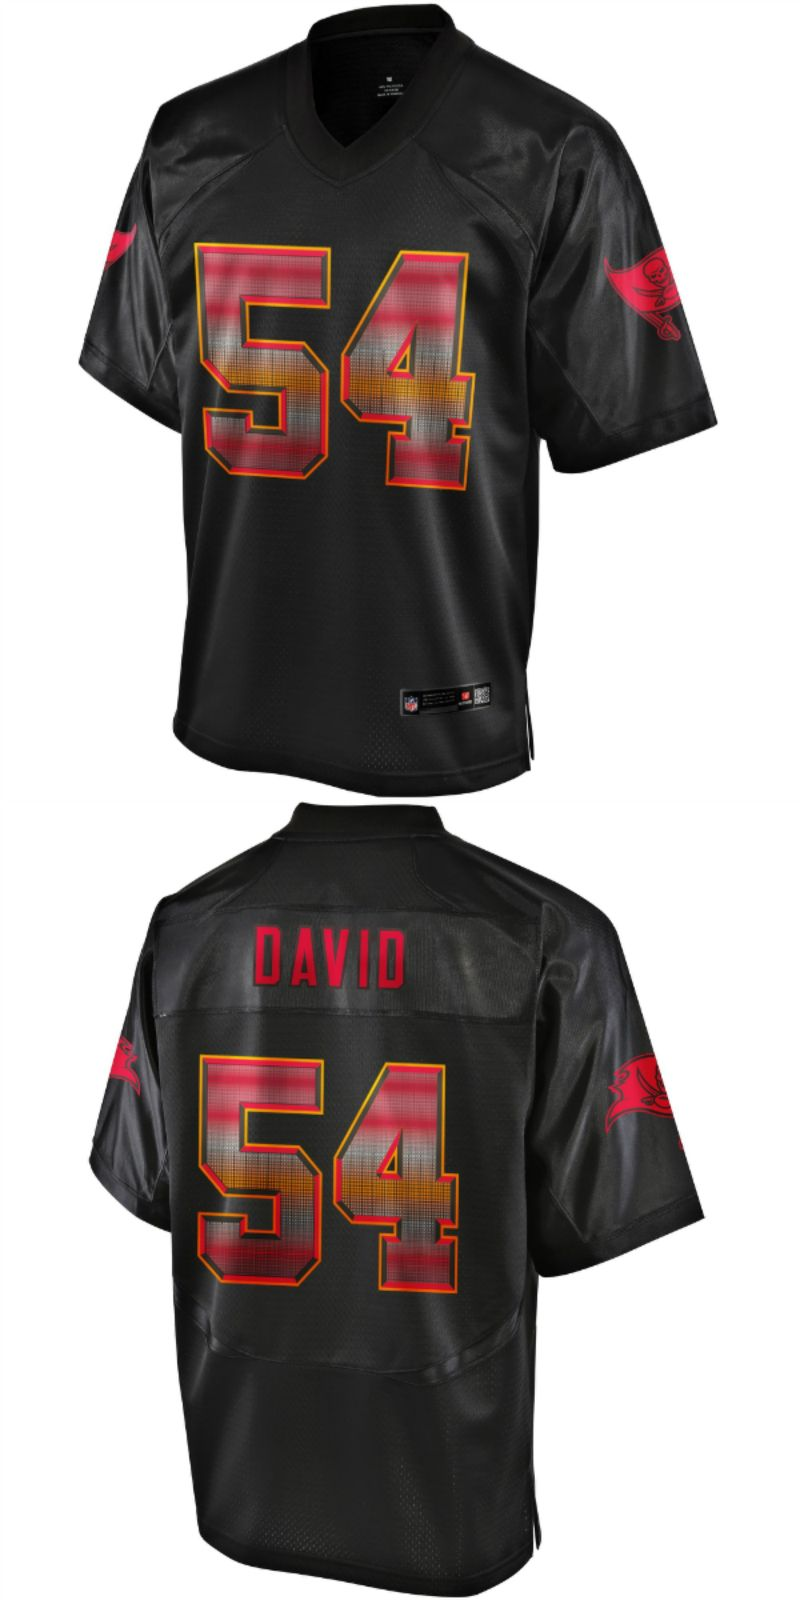 new product 7382f fdc38 UP TO 70% OFF. Lavonte David Tampa Bay Buccaneers NFL Pro ...